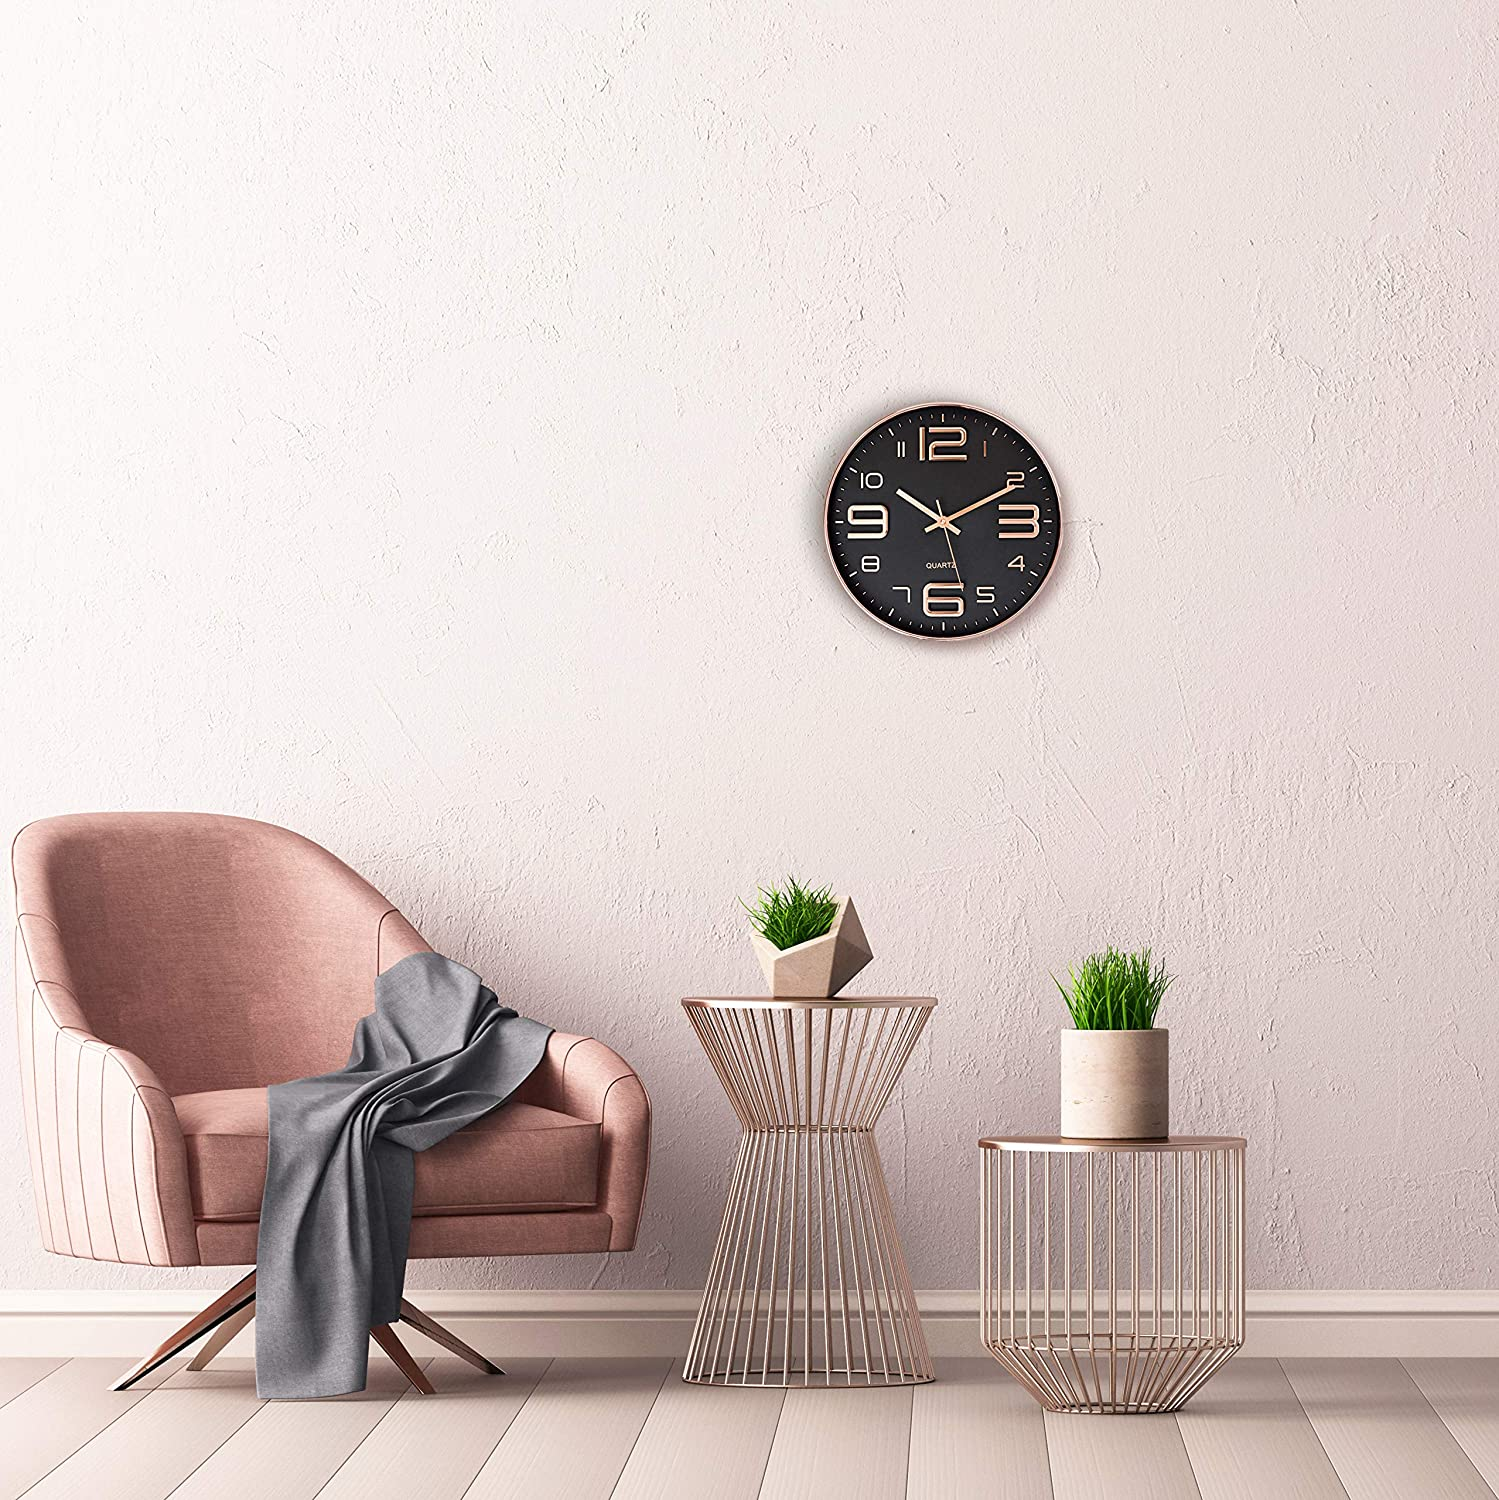 Bernhard Products Black Wall Clock 12 Inch Rose Gold Silent Non Ticking Quality Quartz Battery Operated Easy to Read Decorative Modern Design for Home//Office//Kitchen//Bedroom//Living Room